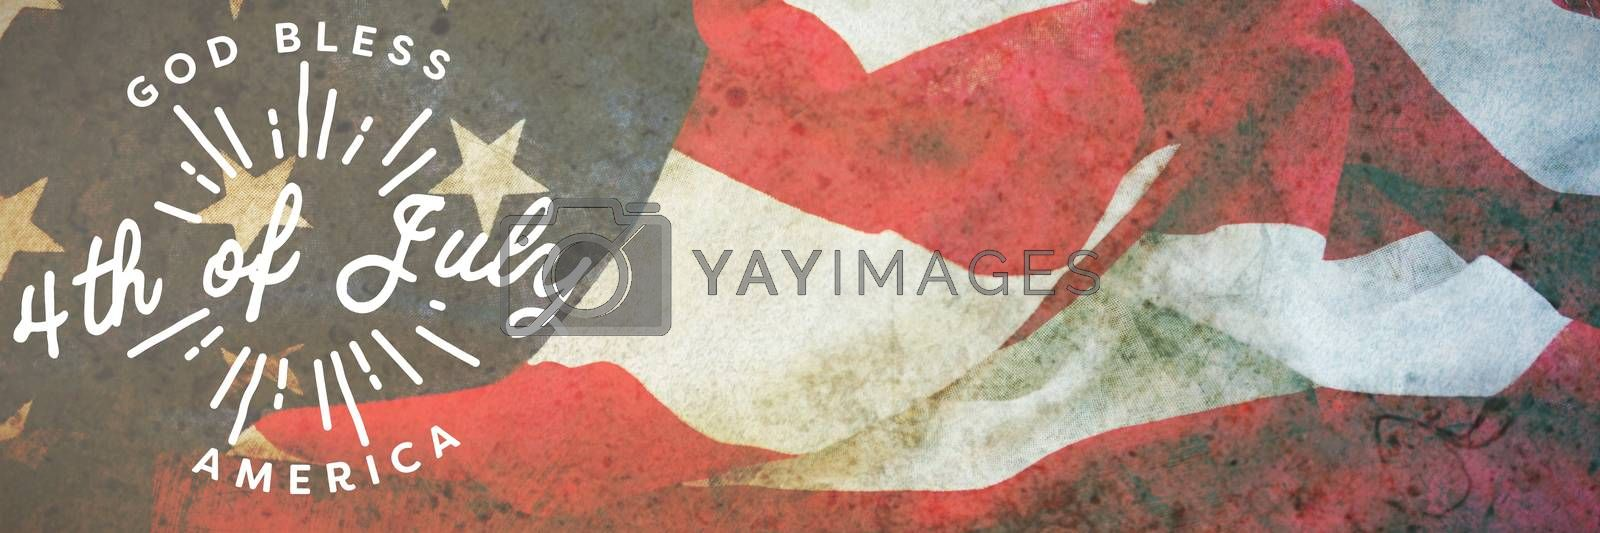 Royalty free image of Composite image of digitally generated image of happy 4th of july message by Wavebreakmedia